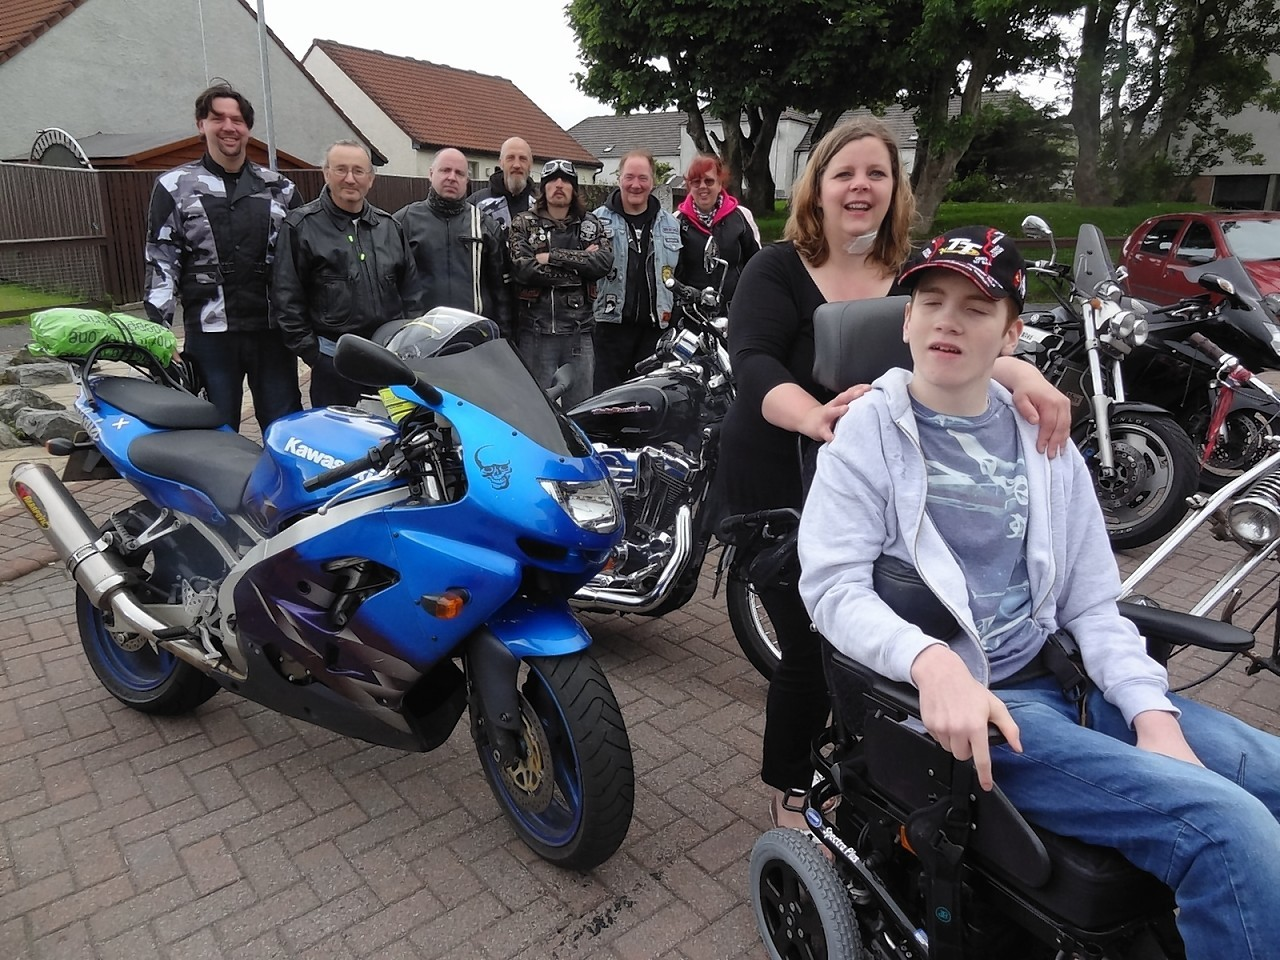 Shaun Hill and mother, Barbara, with some of the bikers